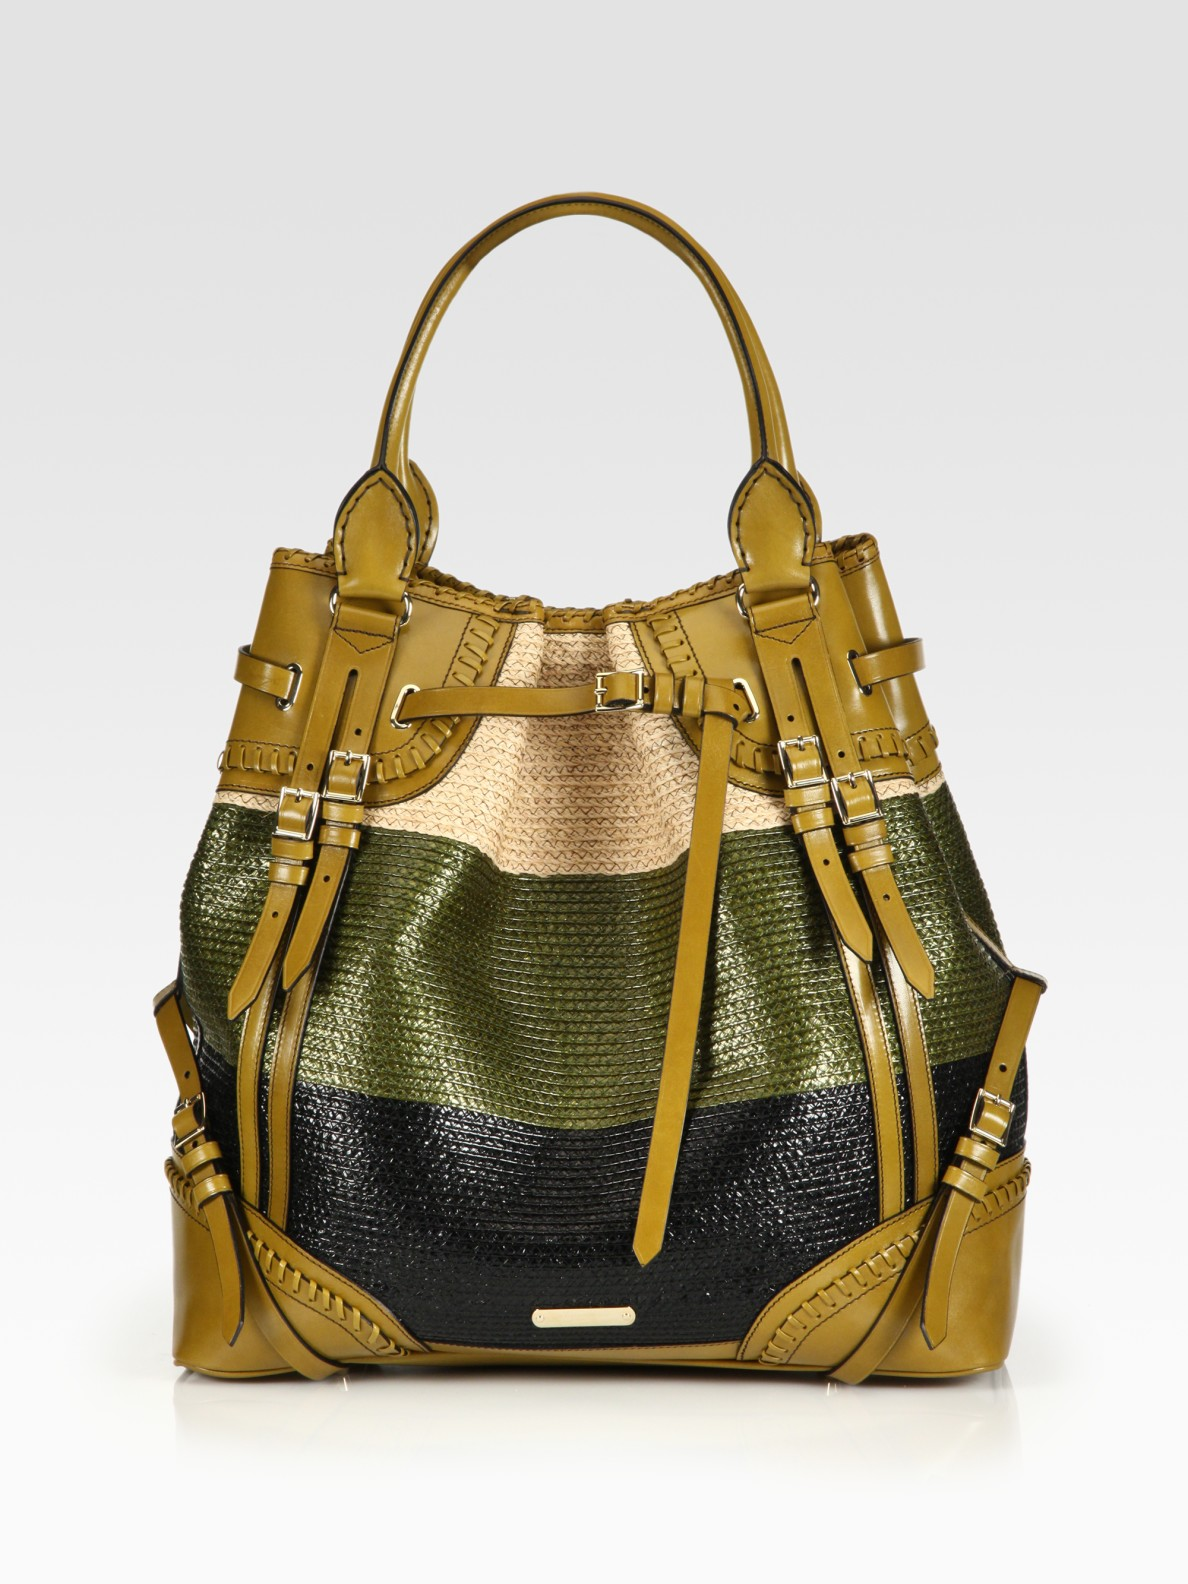 Lyst Burberry Prorsum Medium Whipstitch Tote Bag